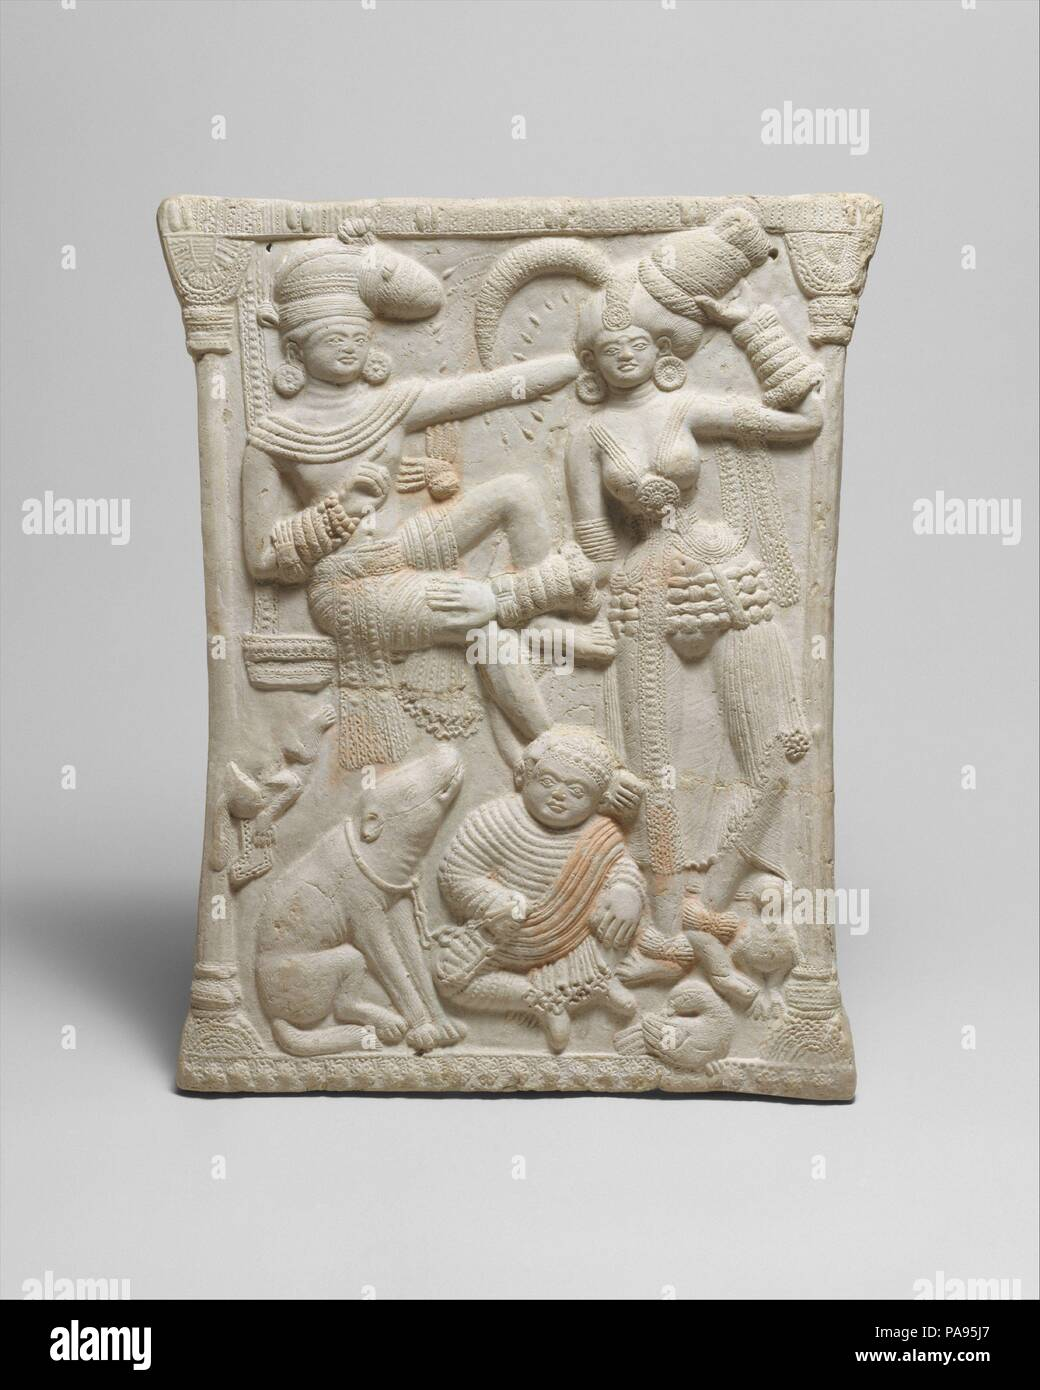 Plaque with a Royal Family. Culture: India (West Bengal, Chandraketugarh).  Dimensions: H. 12 3/4 in. (32.5 cm); W. 10 1/4 in. (26 cm).